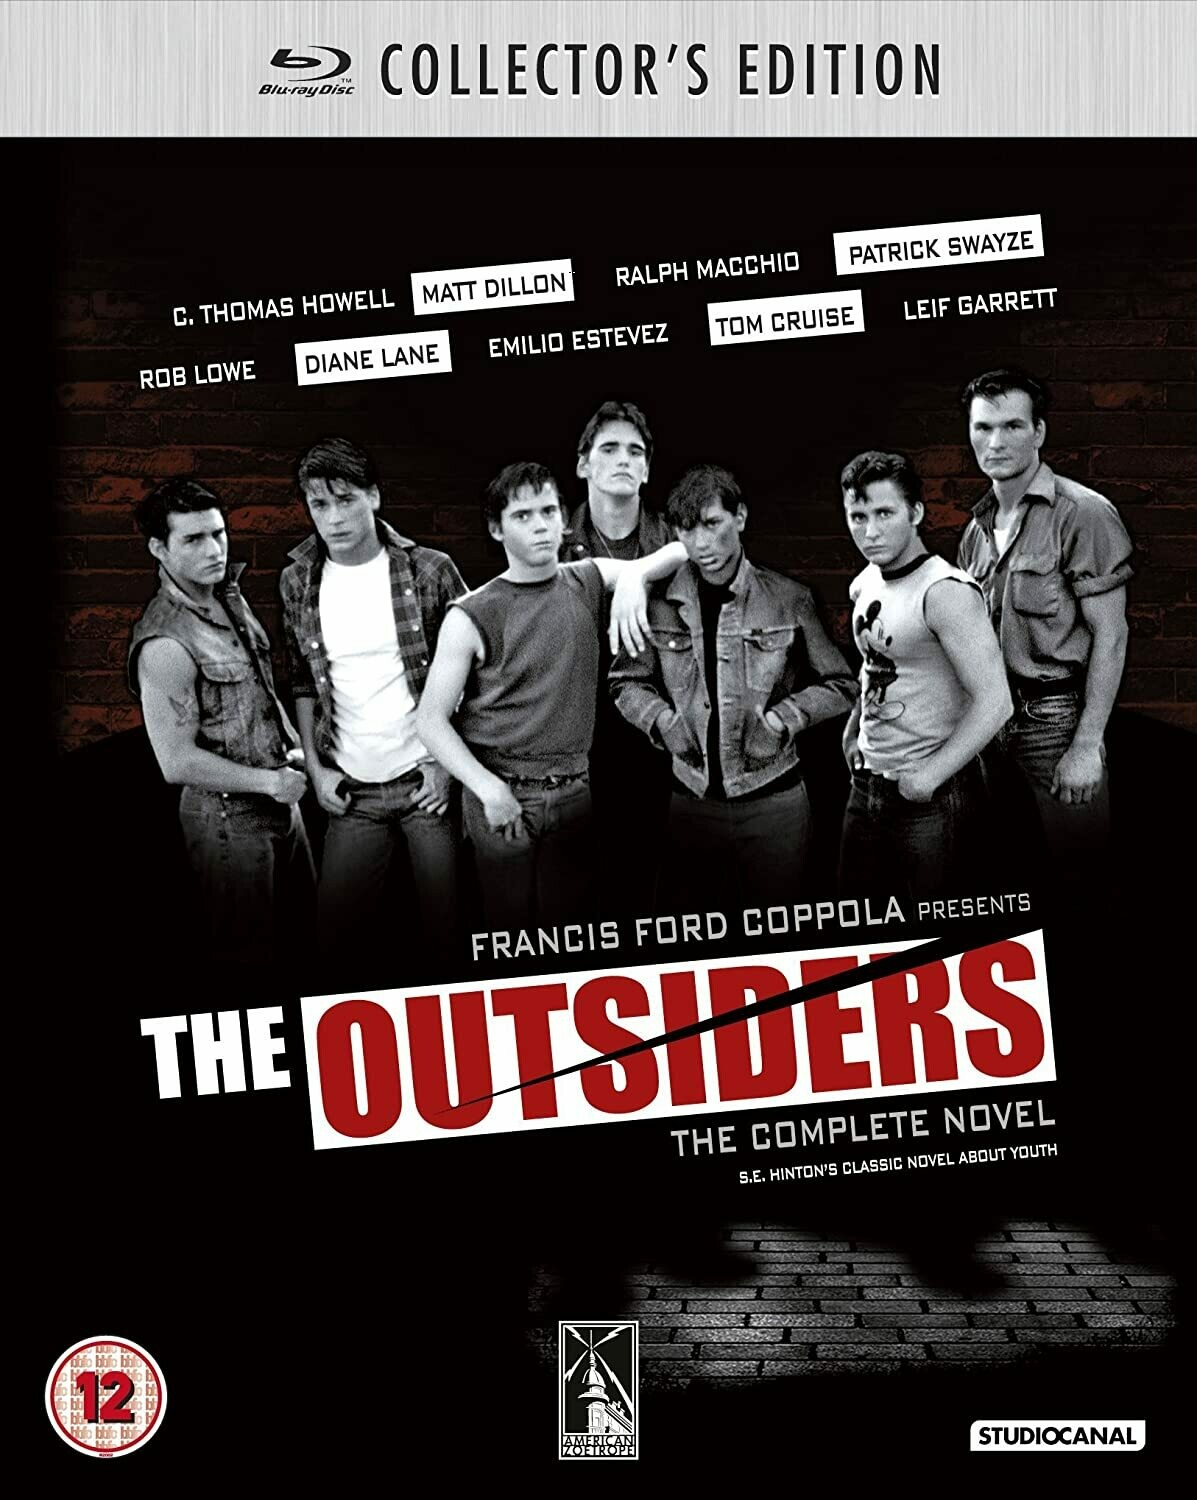 THE OUTSIDERS - SUPER SPECIAL EDITION - BLURAY